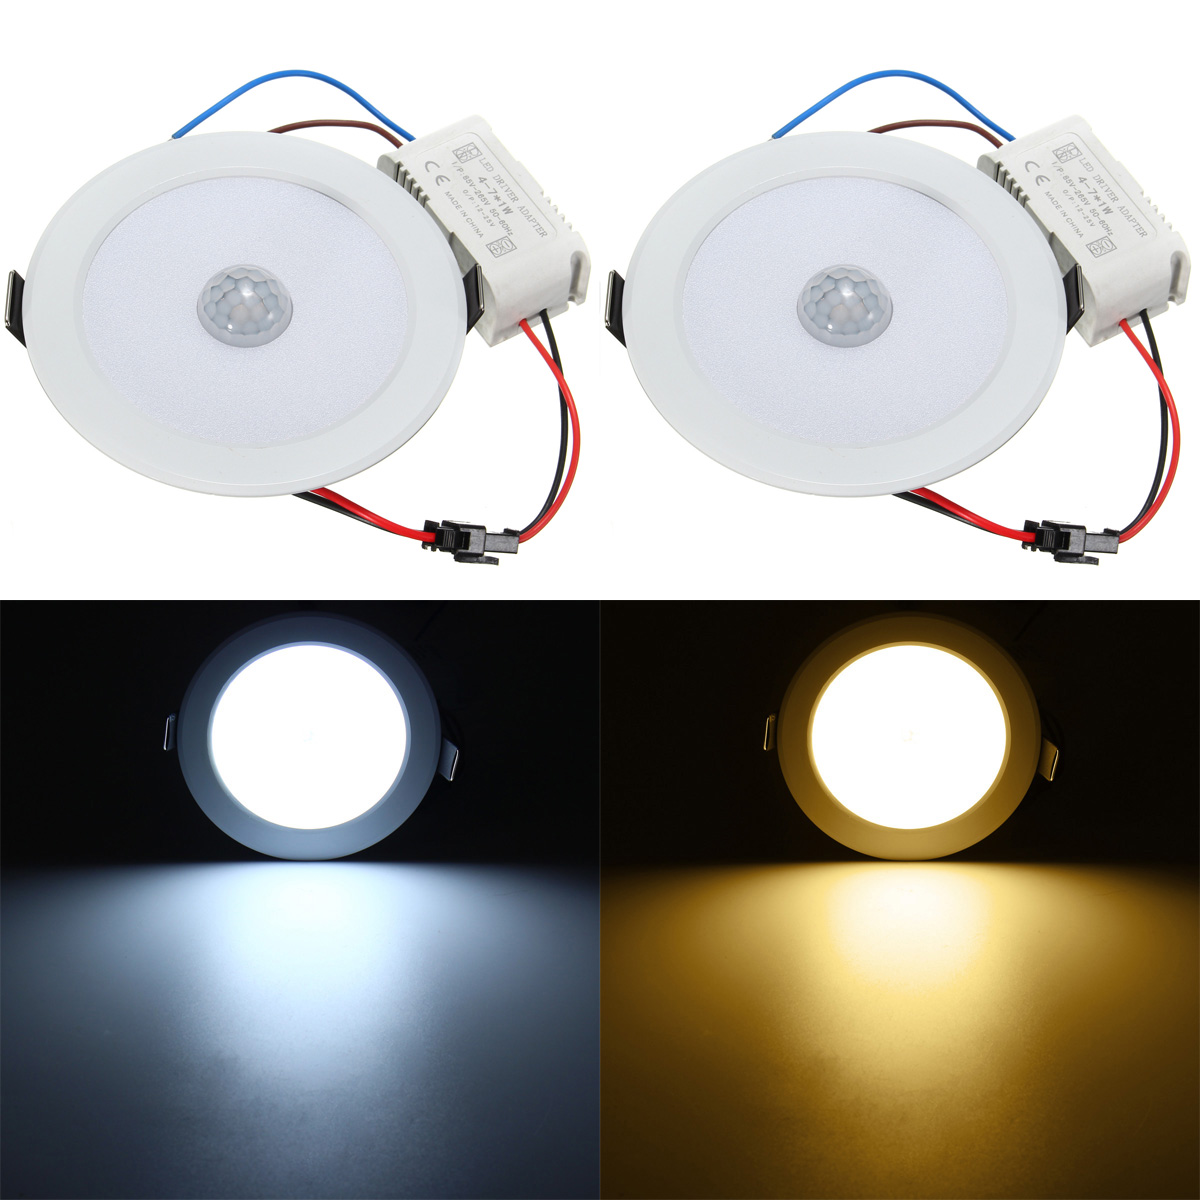 E27 House Motion Sensor Ceiling Light 5730 SMD AC 85-265V LED Night Lamp Warm White Hallway Indoor Lighting padovan корм padovan panico для птиц зёрна проса 1 кг